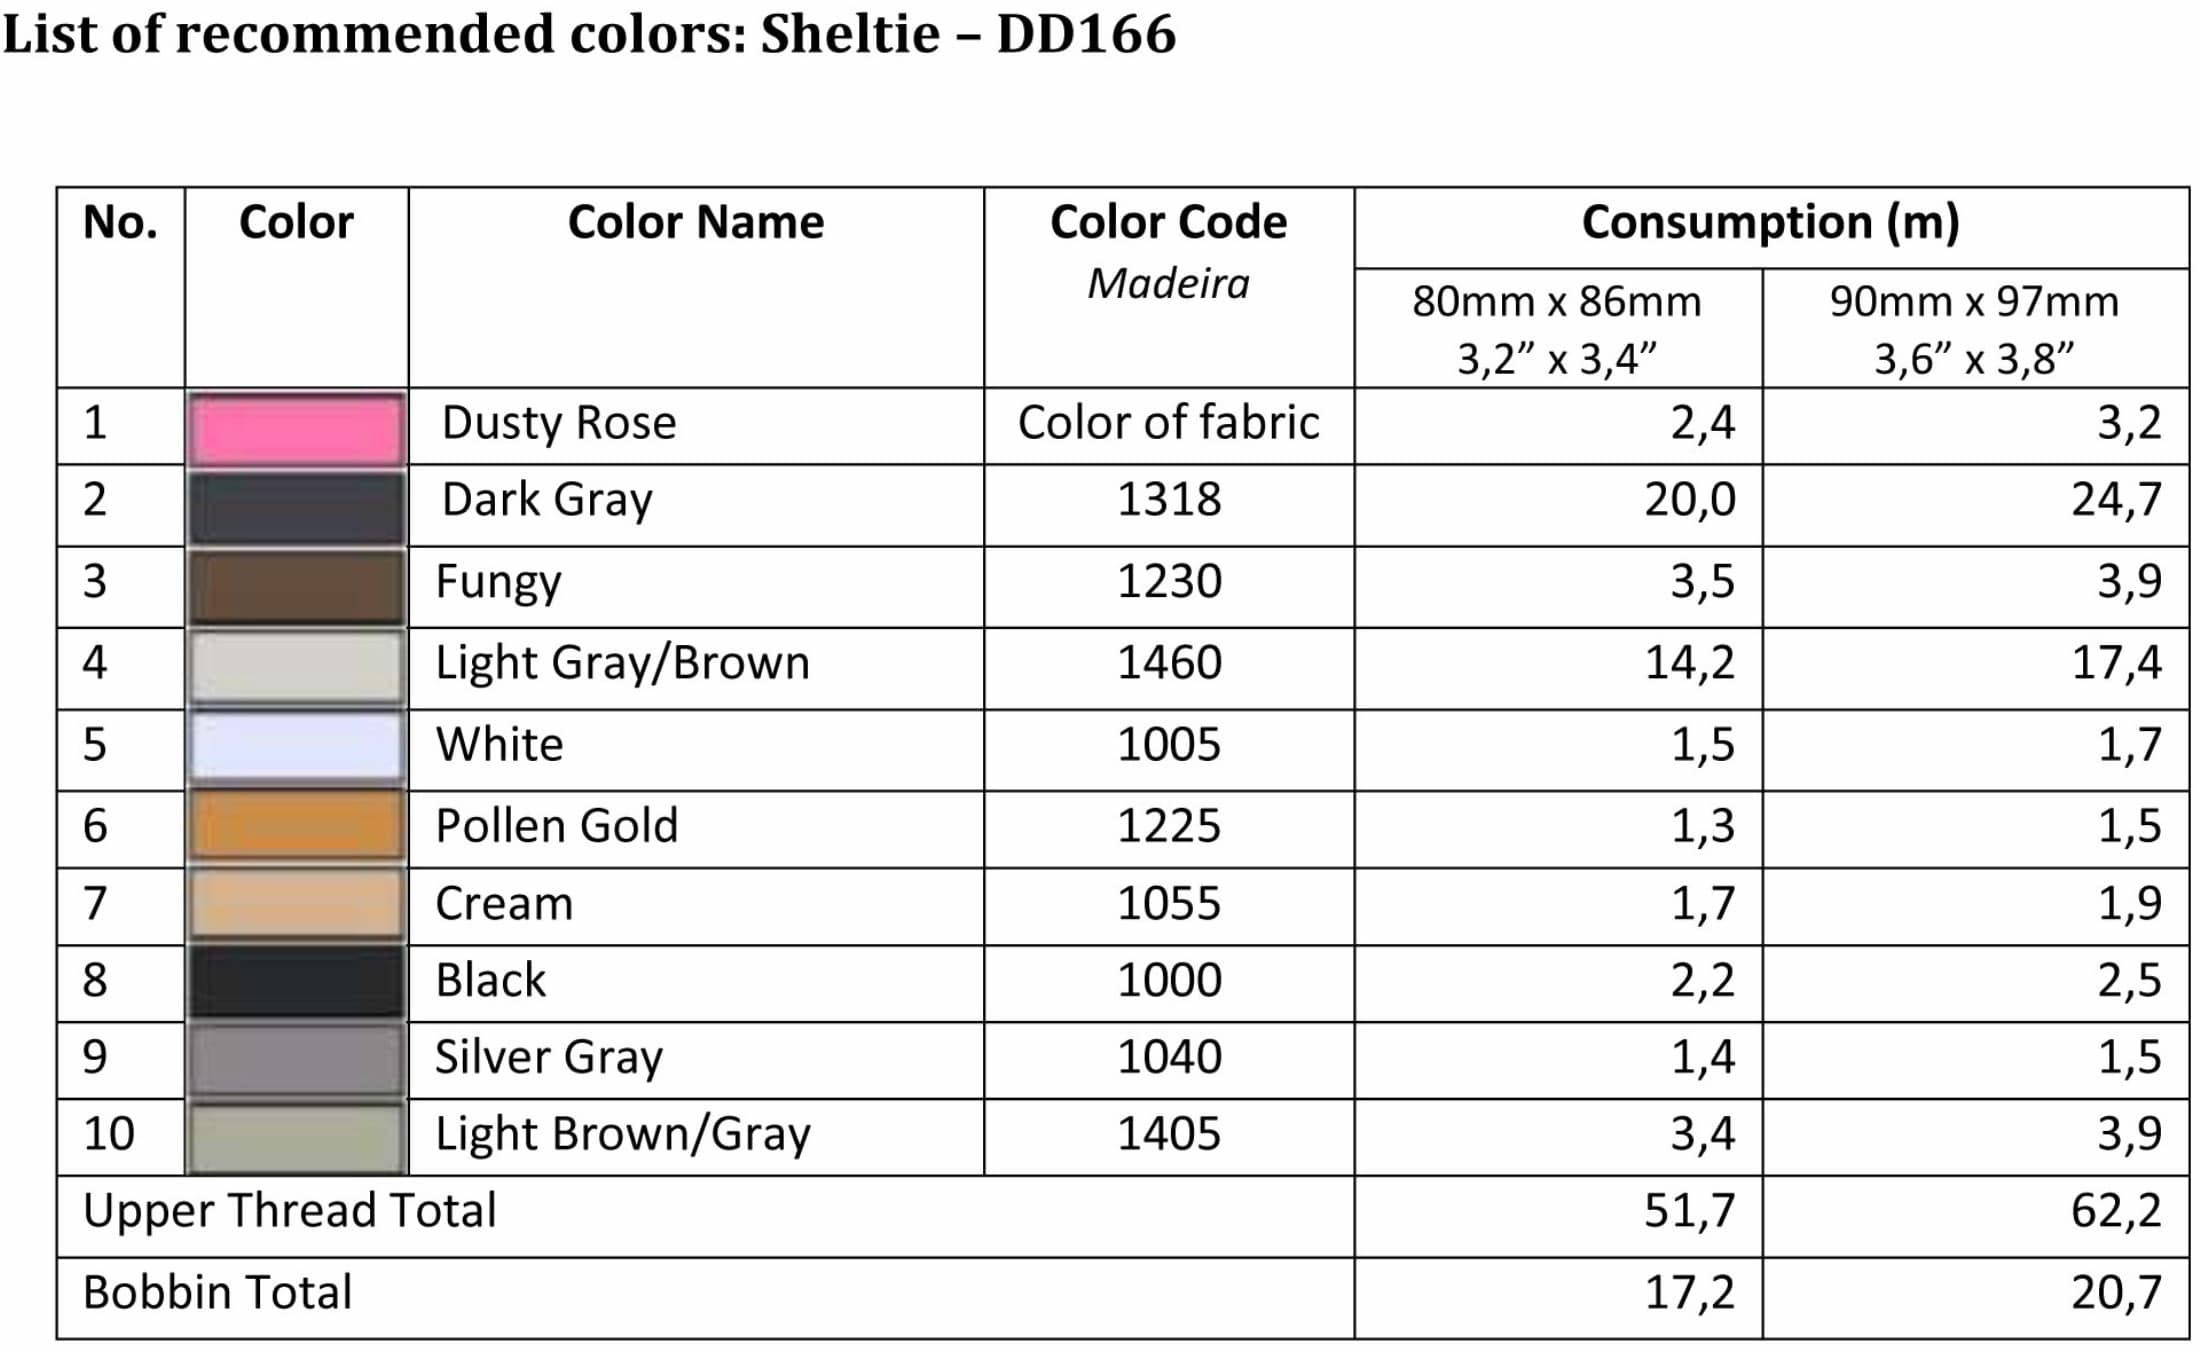 List of recommended colors - DD166